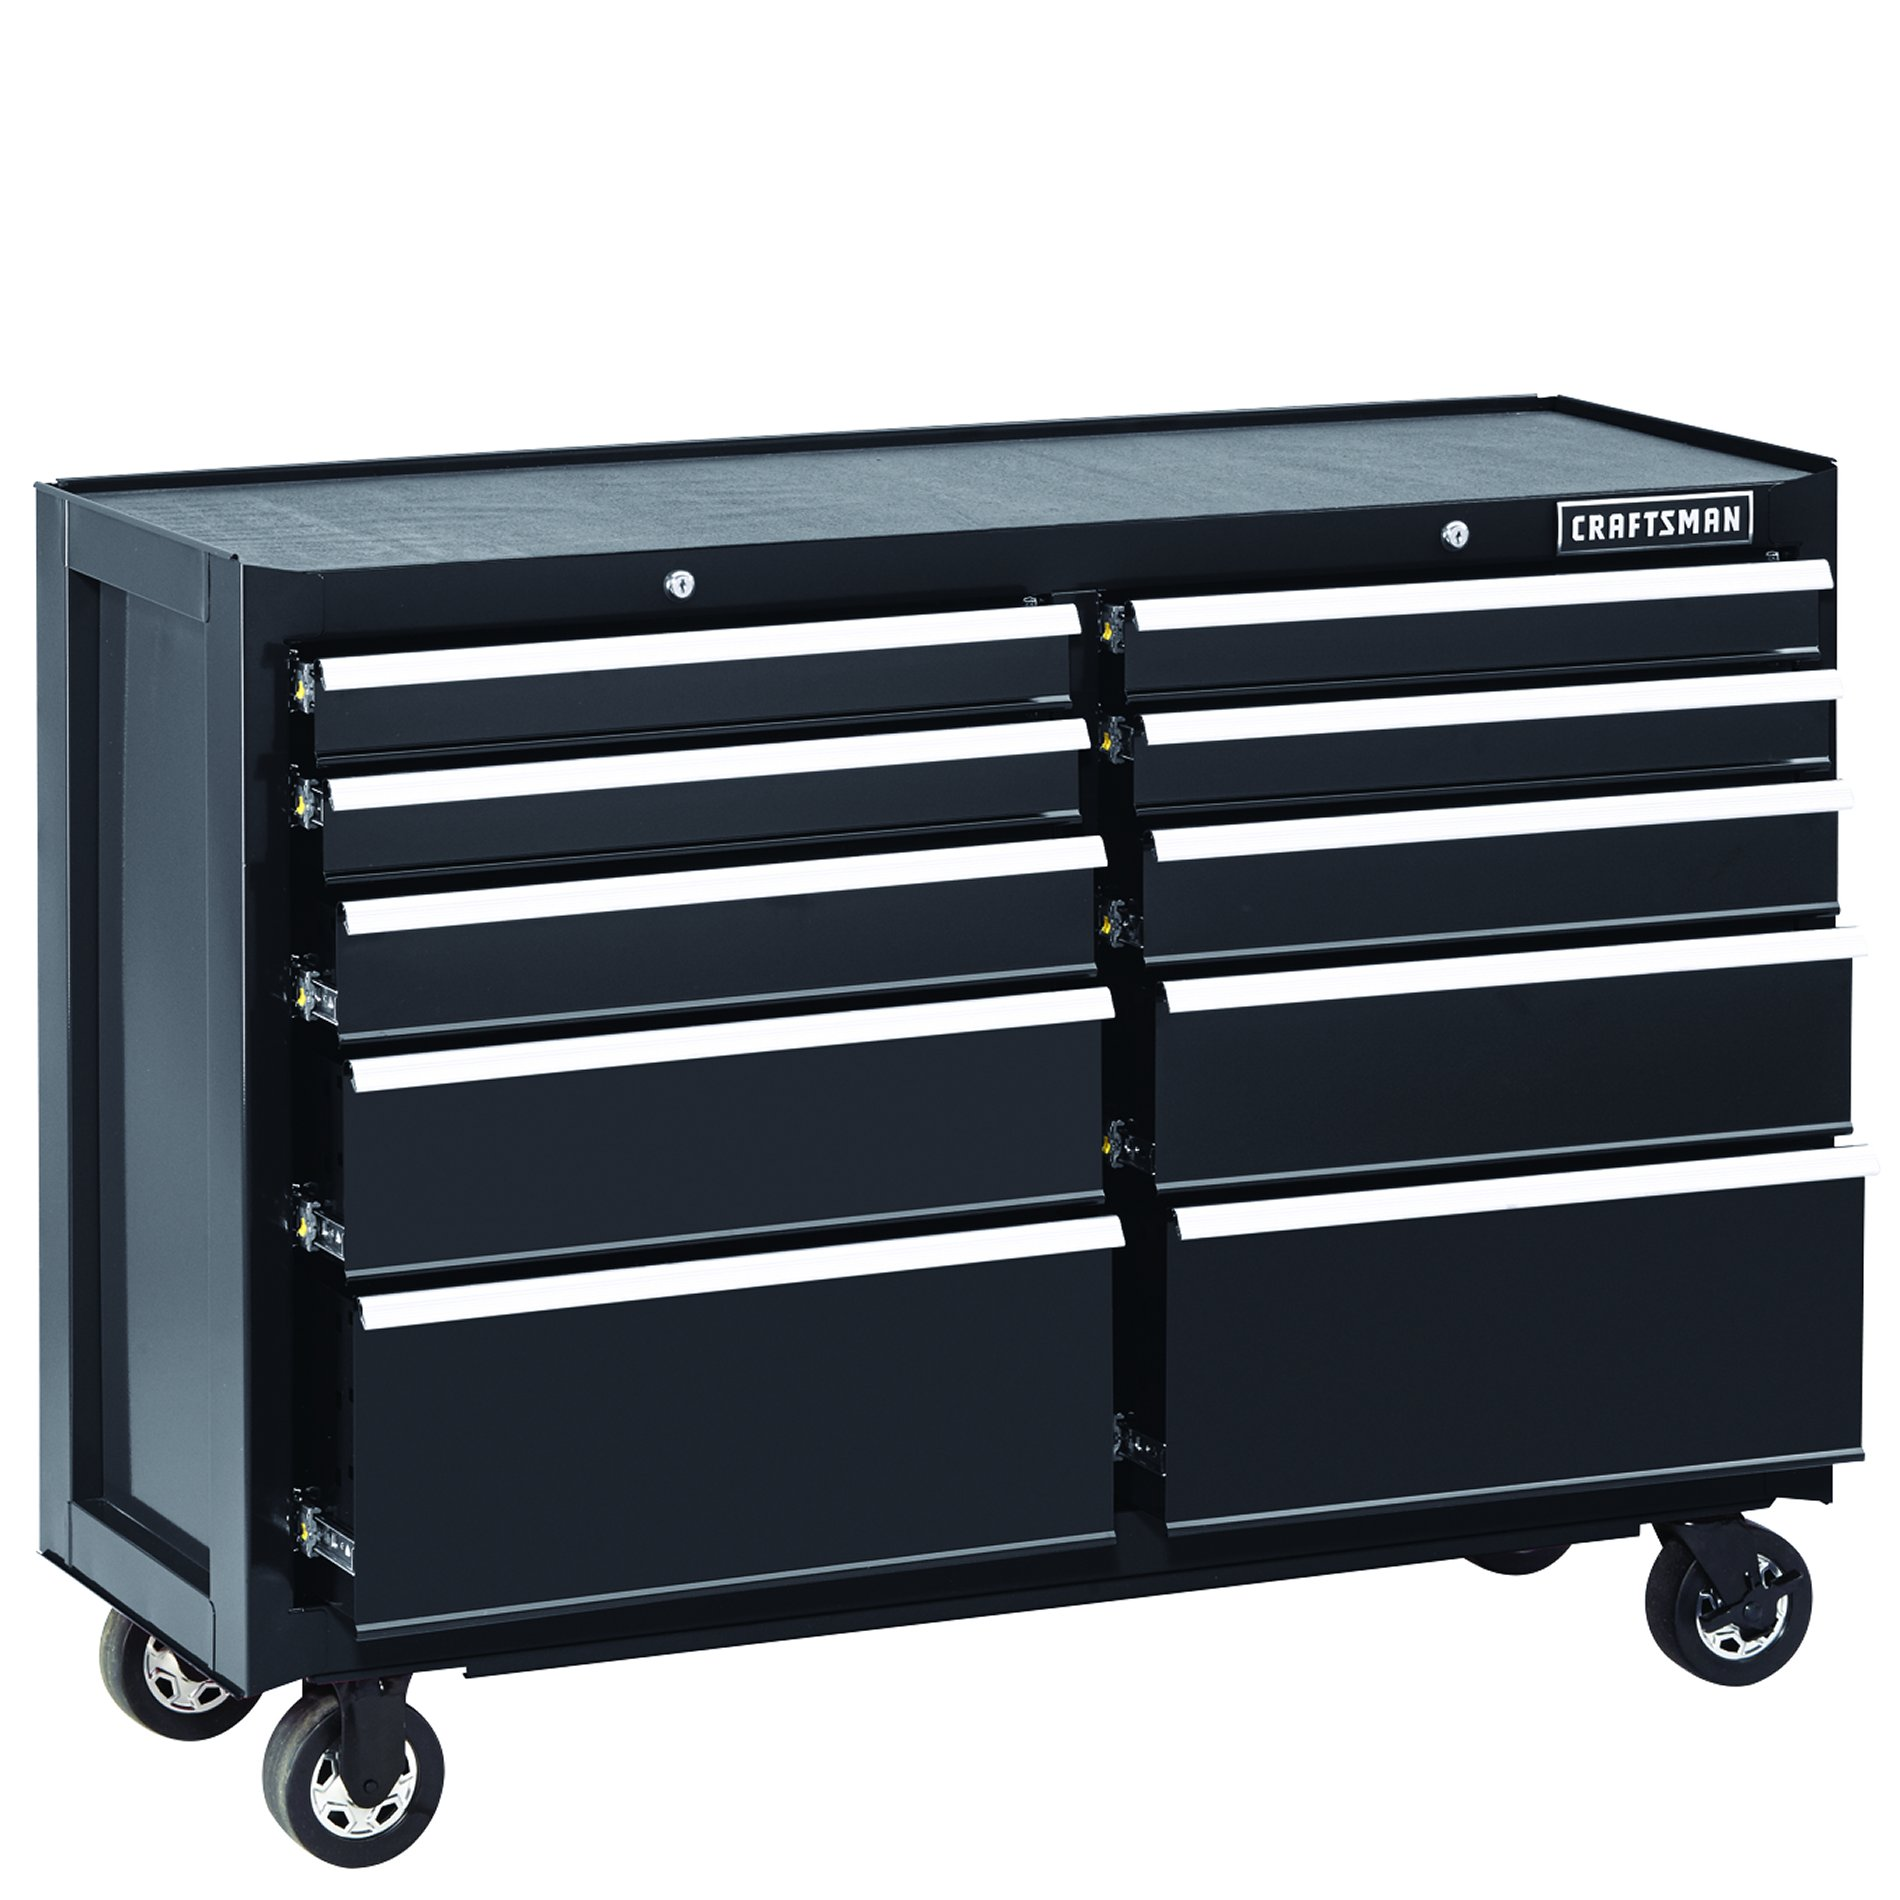 "Craftsman 52"""" 10-Drawer Heavy-Duty Rolling Cart - Black"